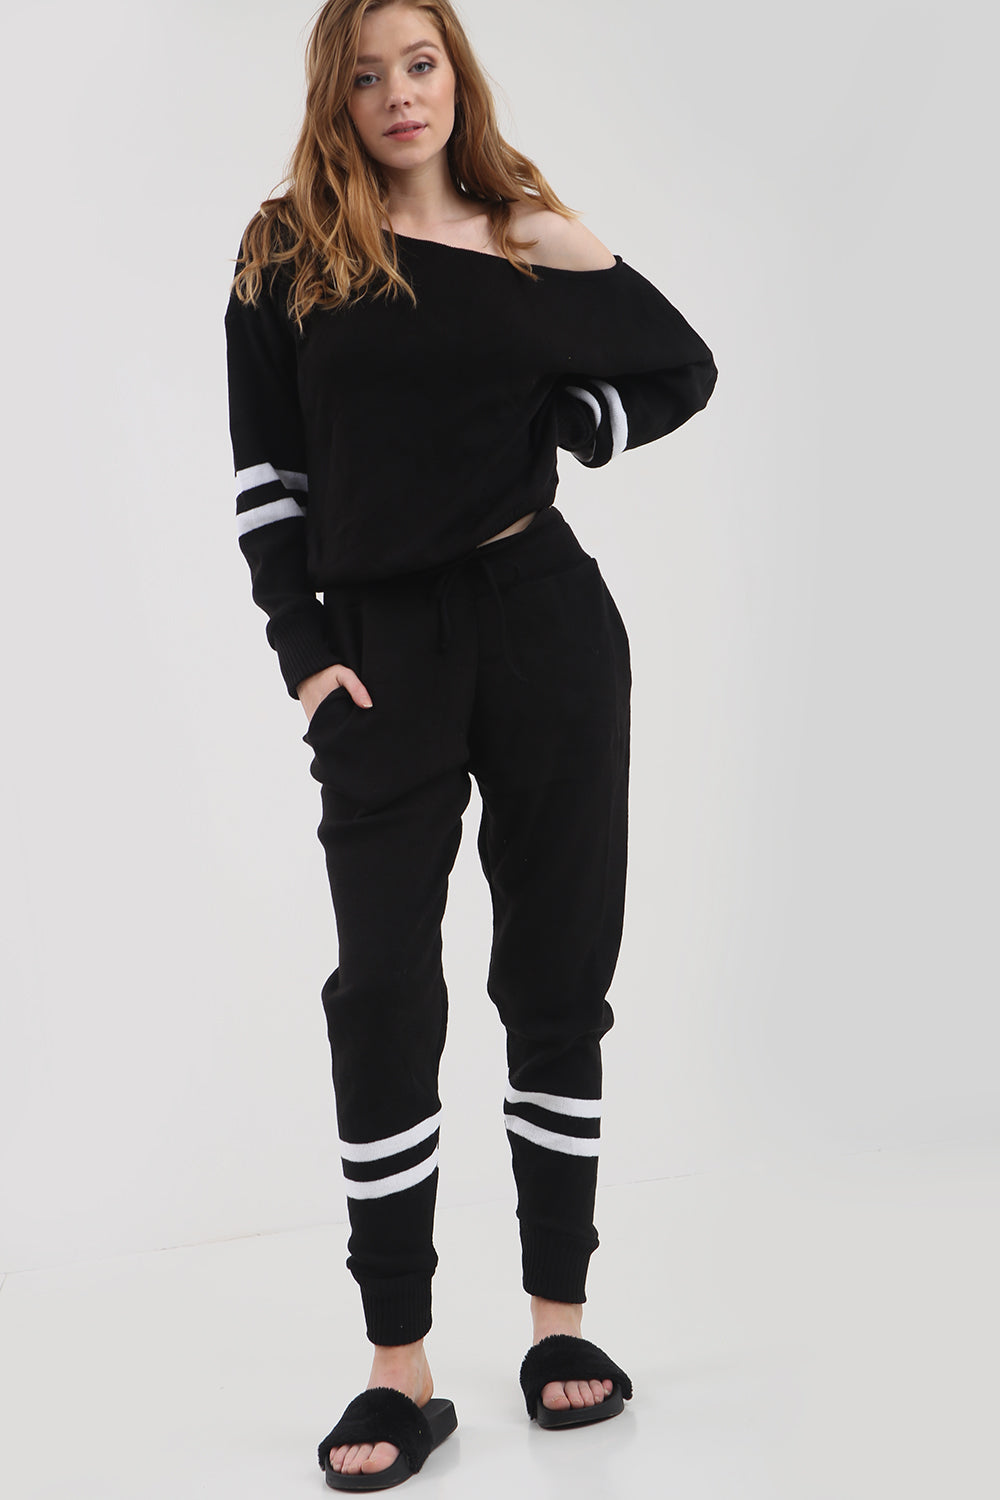 Monochrome Striped Knitted Lounge Wear Coord - bejealous-com